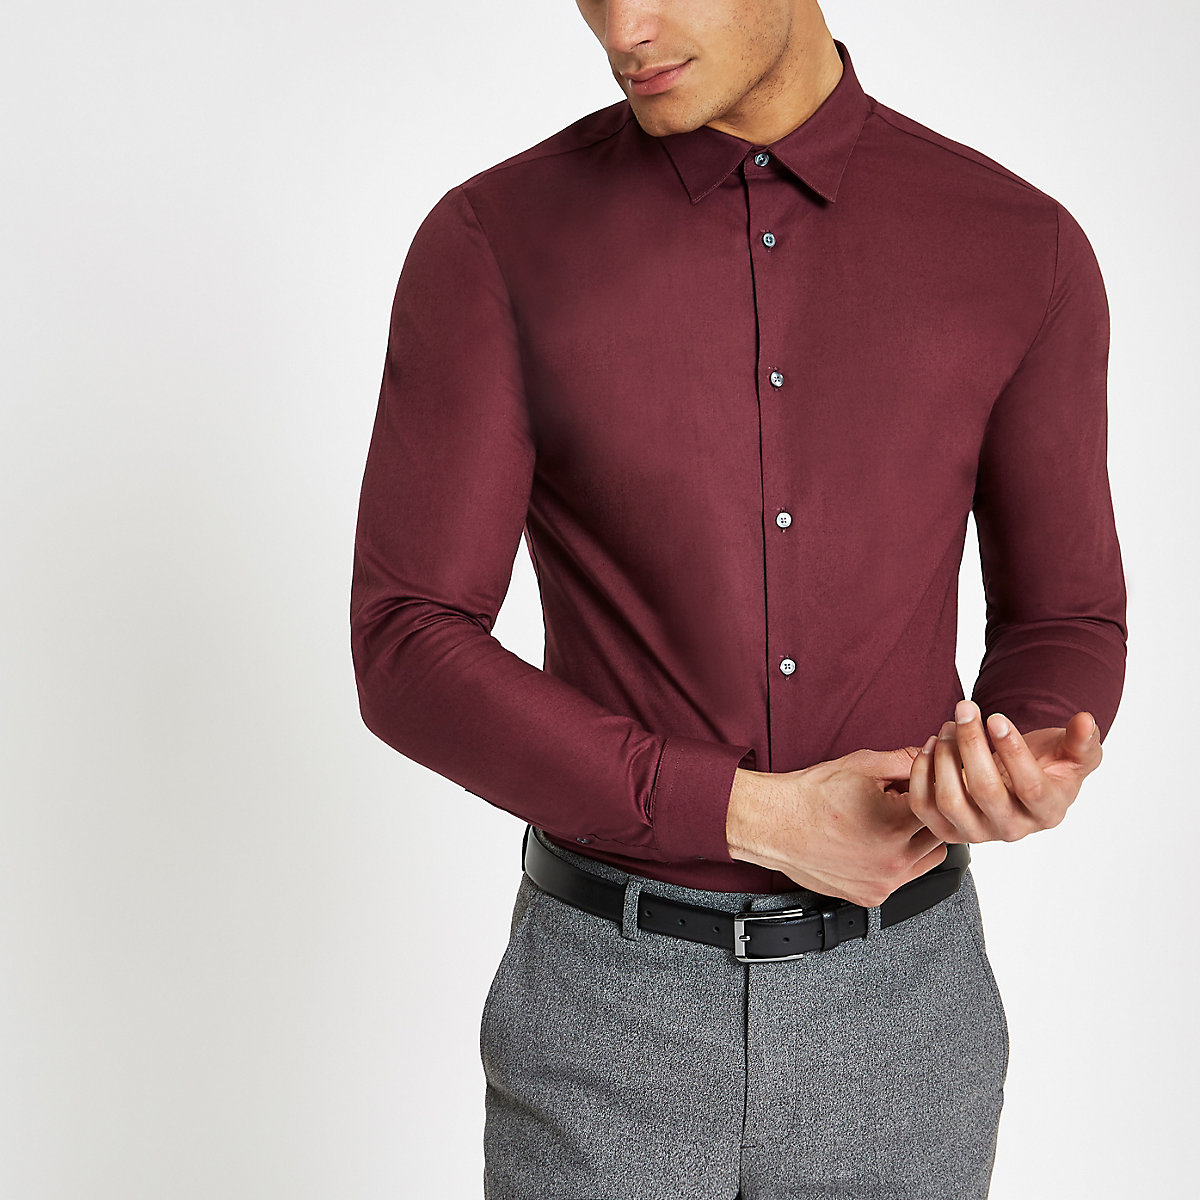 Burgundy muscle fit long sleeve shirt